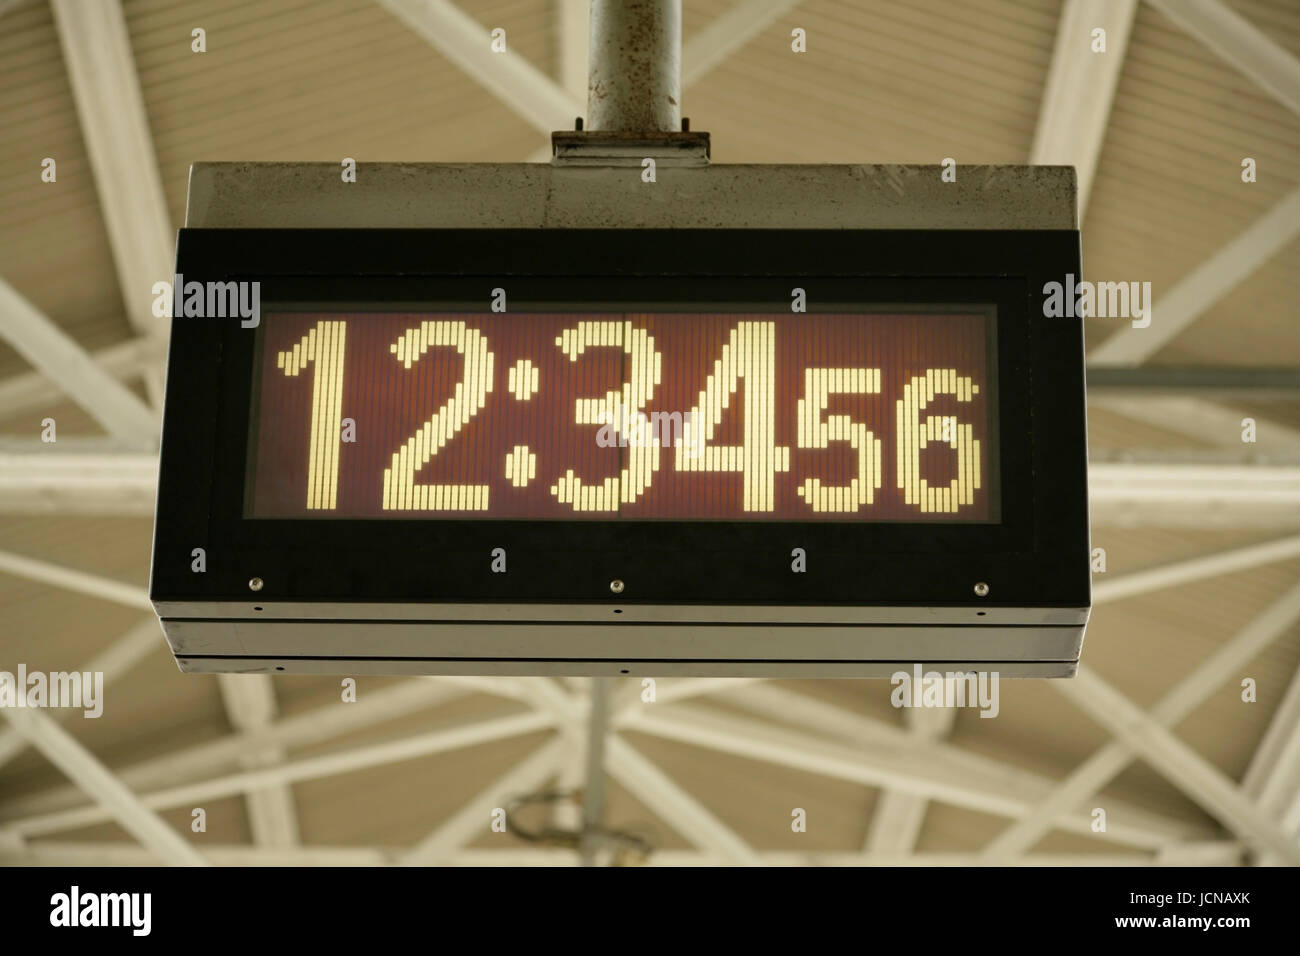 Digital clock reading 34 minutes and 56 seconds past 12 - Stock Image